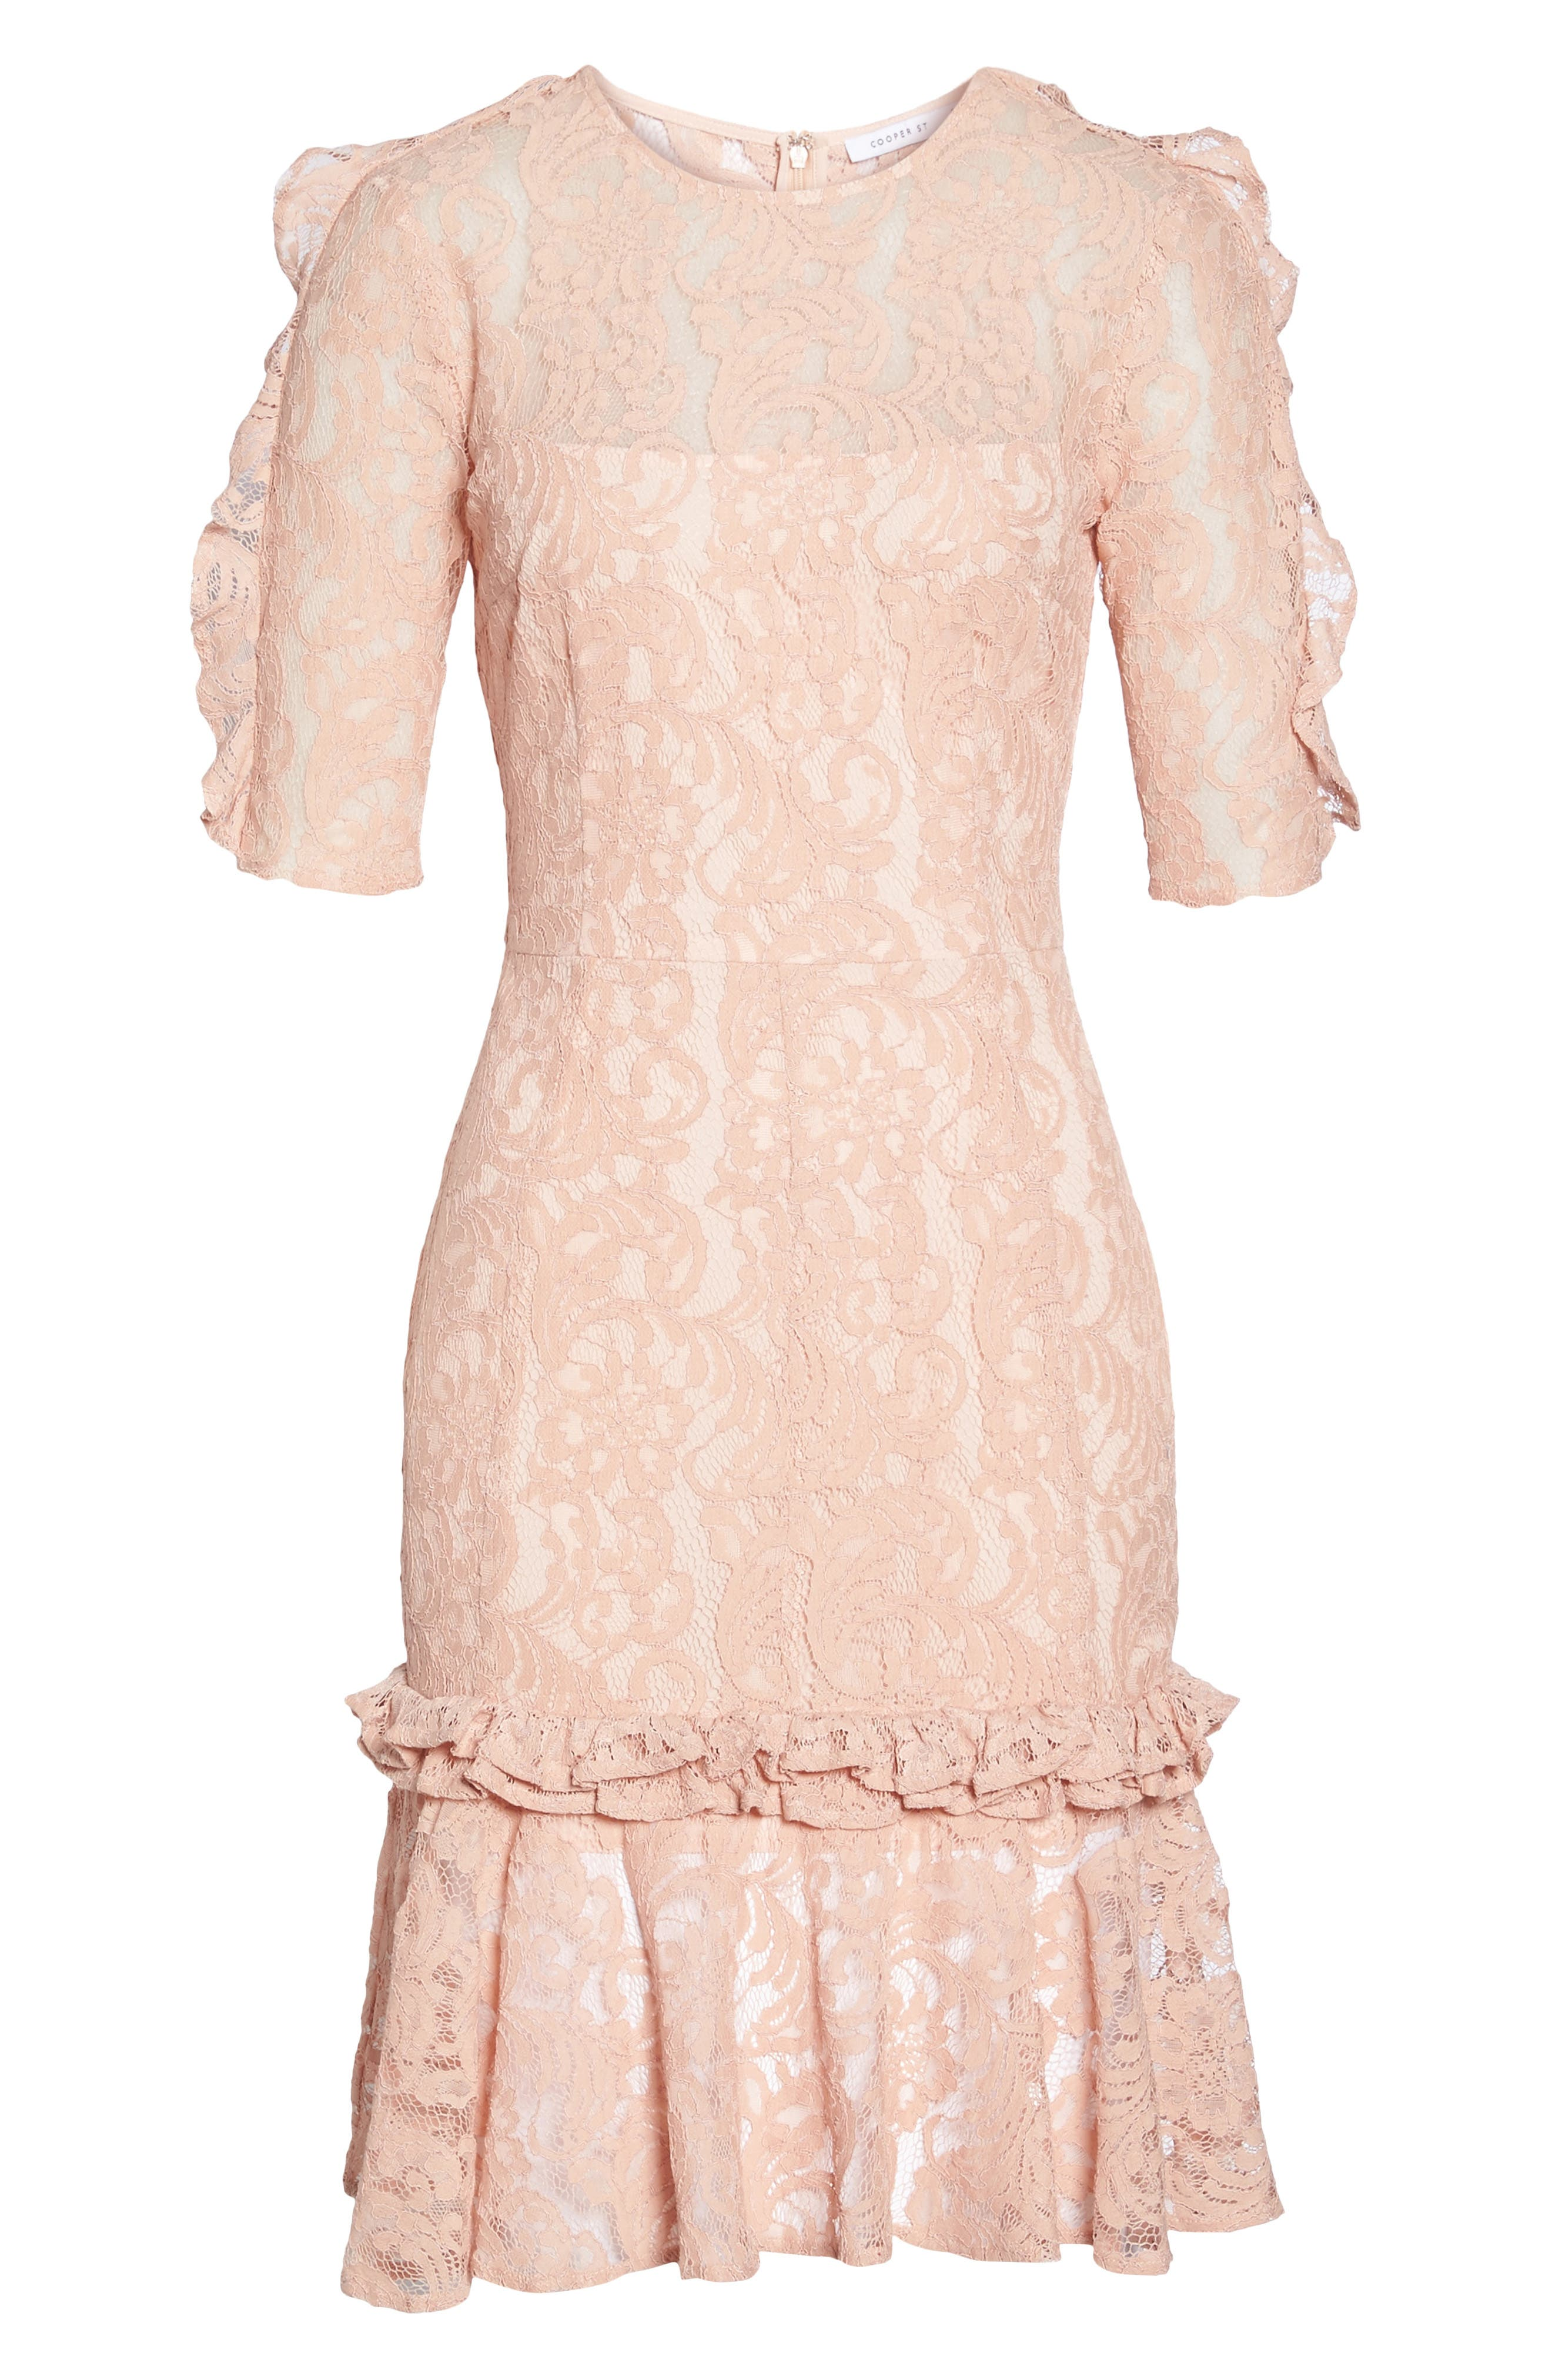 COOPER ST,                             Hushed Dove Lace Dress,                             Alternate thumbnail 6, color,                             650